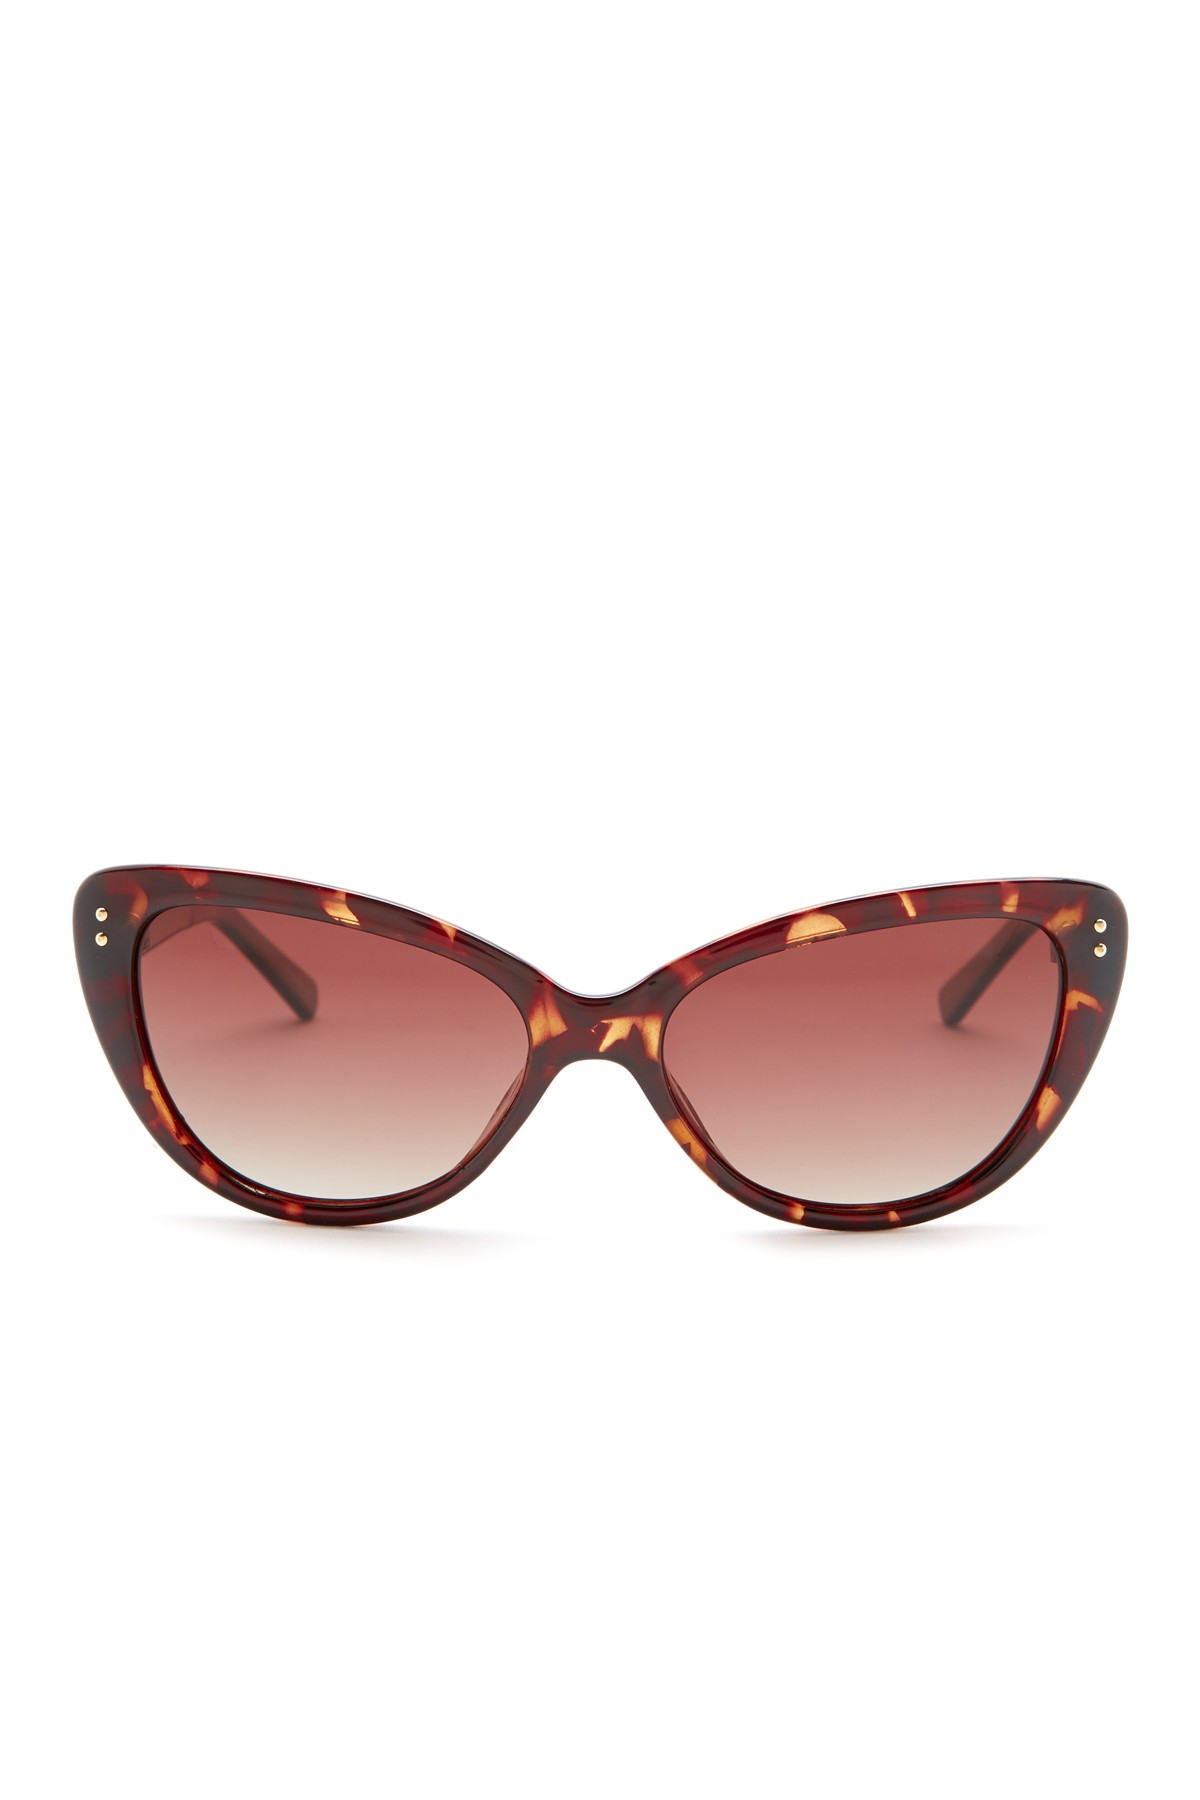 Cole Haan Cat Eye Sunglasses